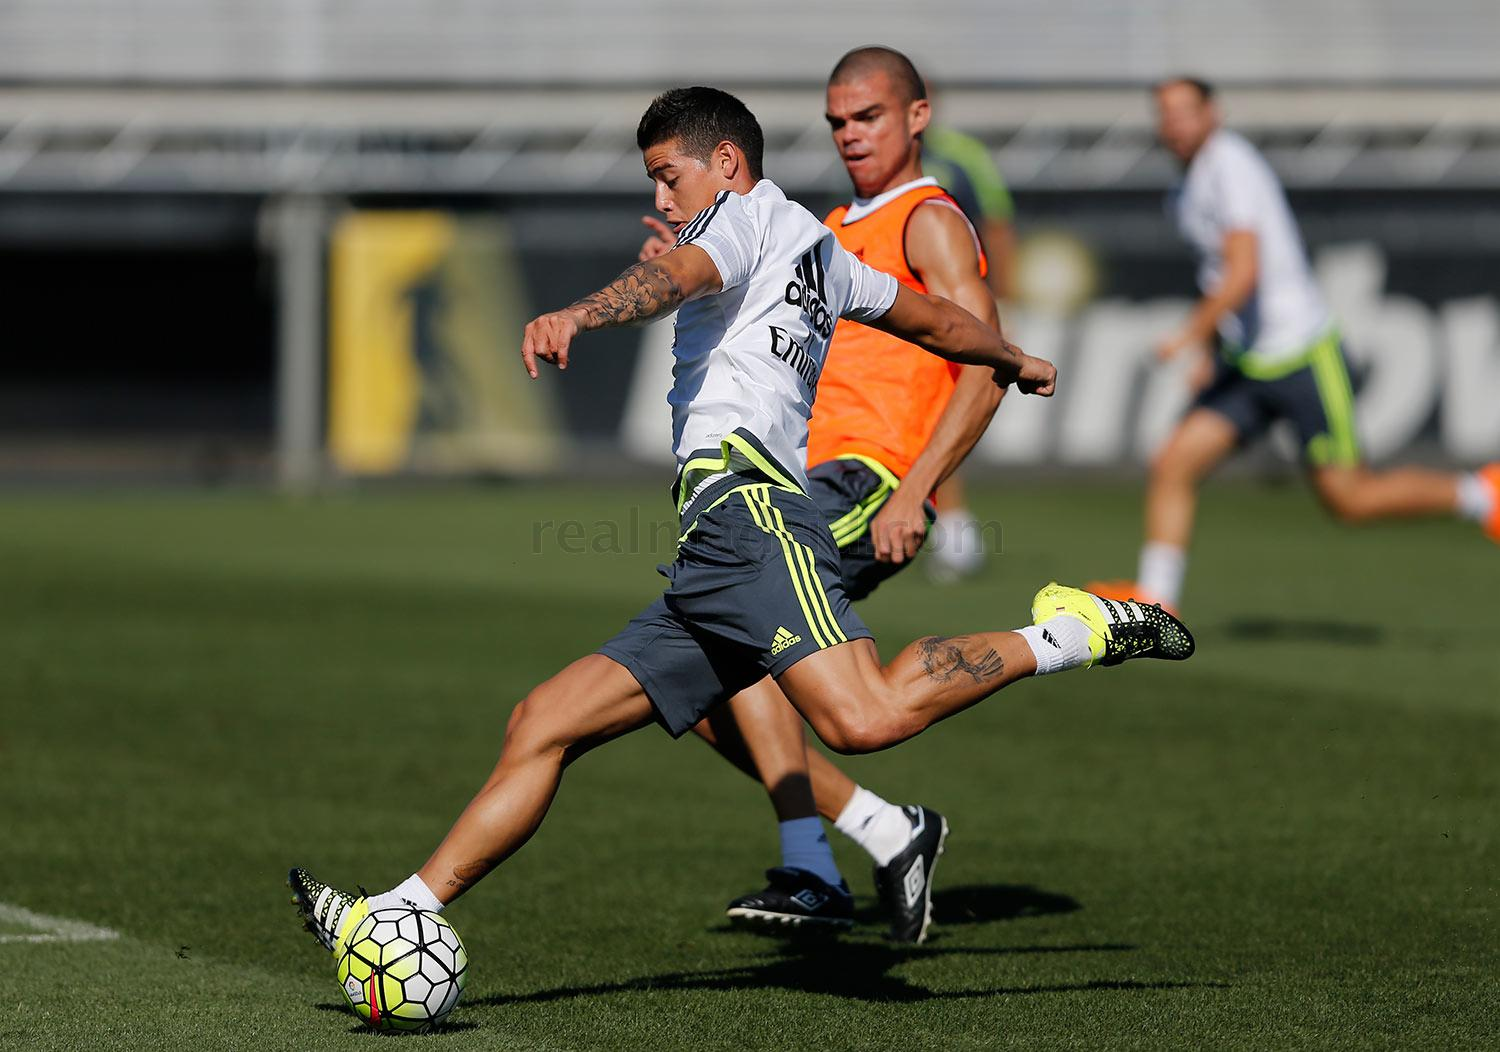 Real Madrid - Entrenamiento del Real Madrid - 26-08-2015